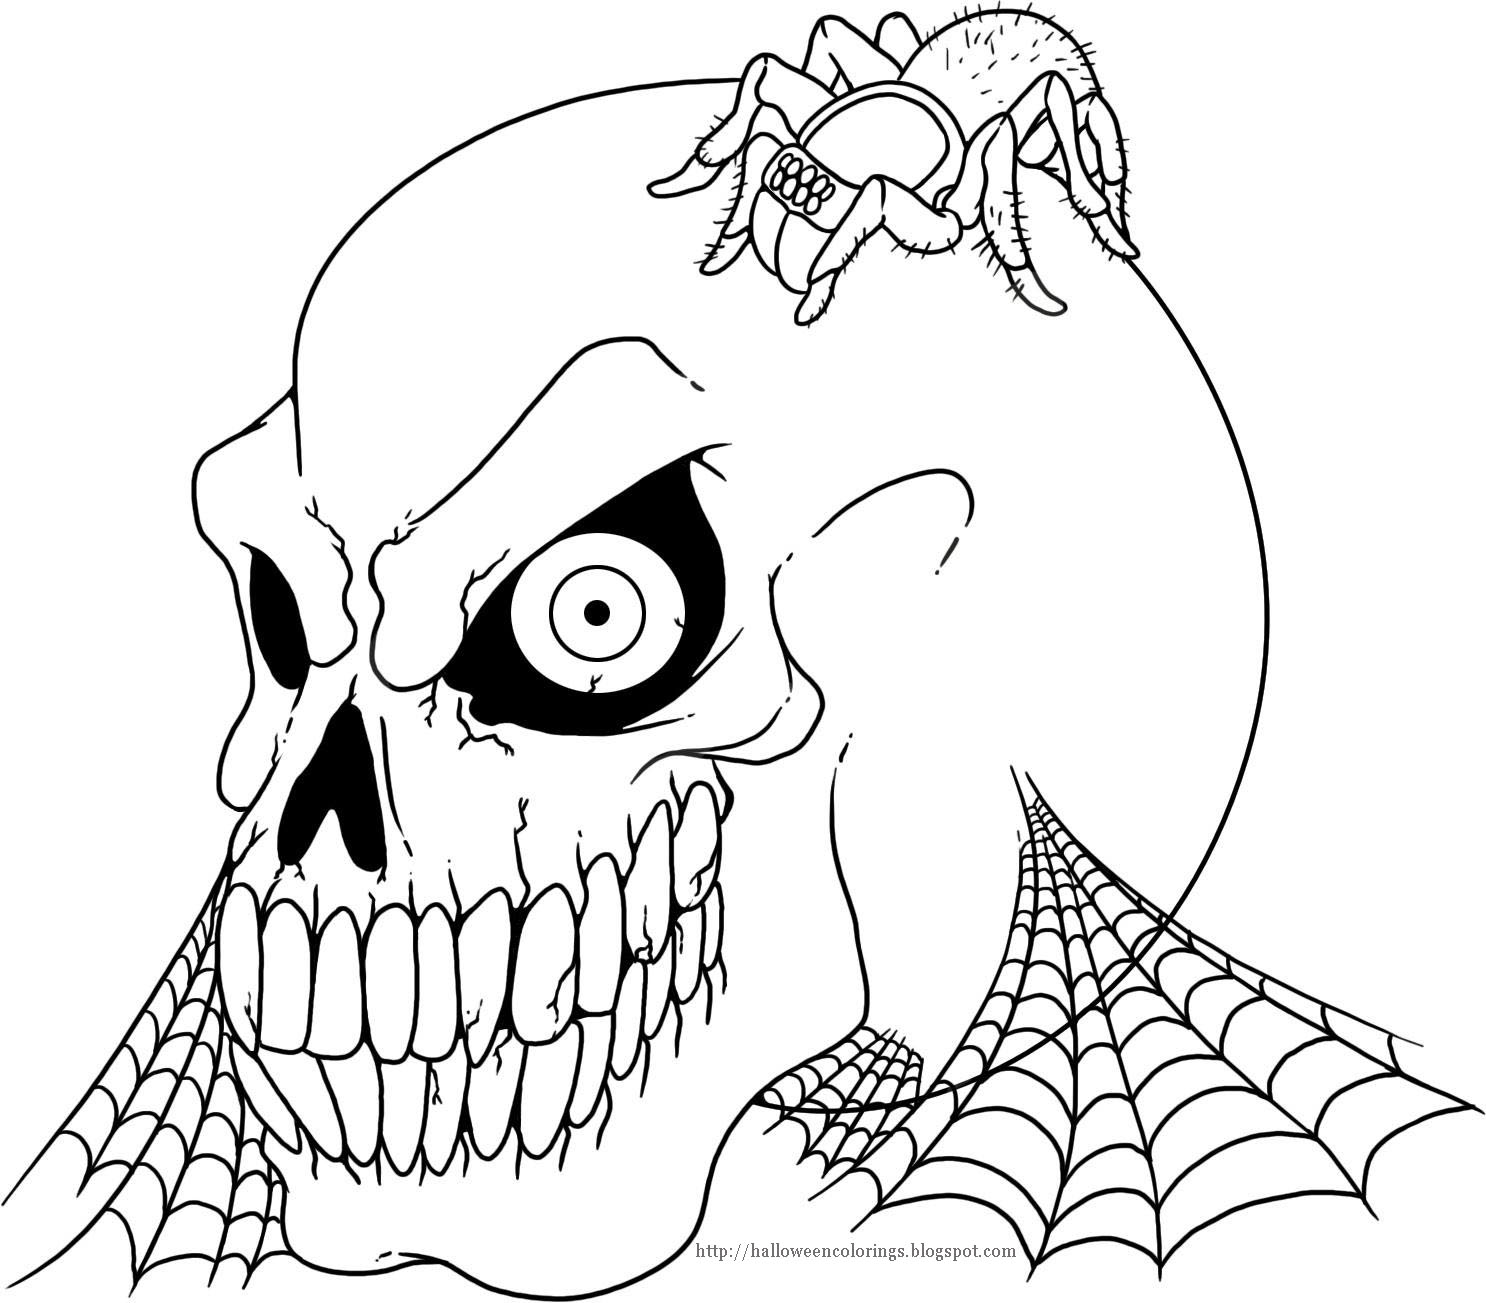 free coloring pages halloween - photo#48